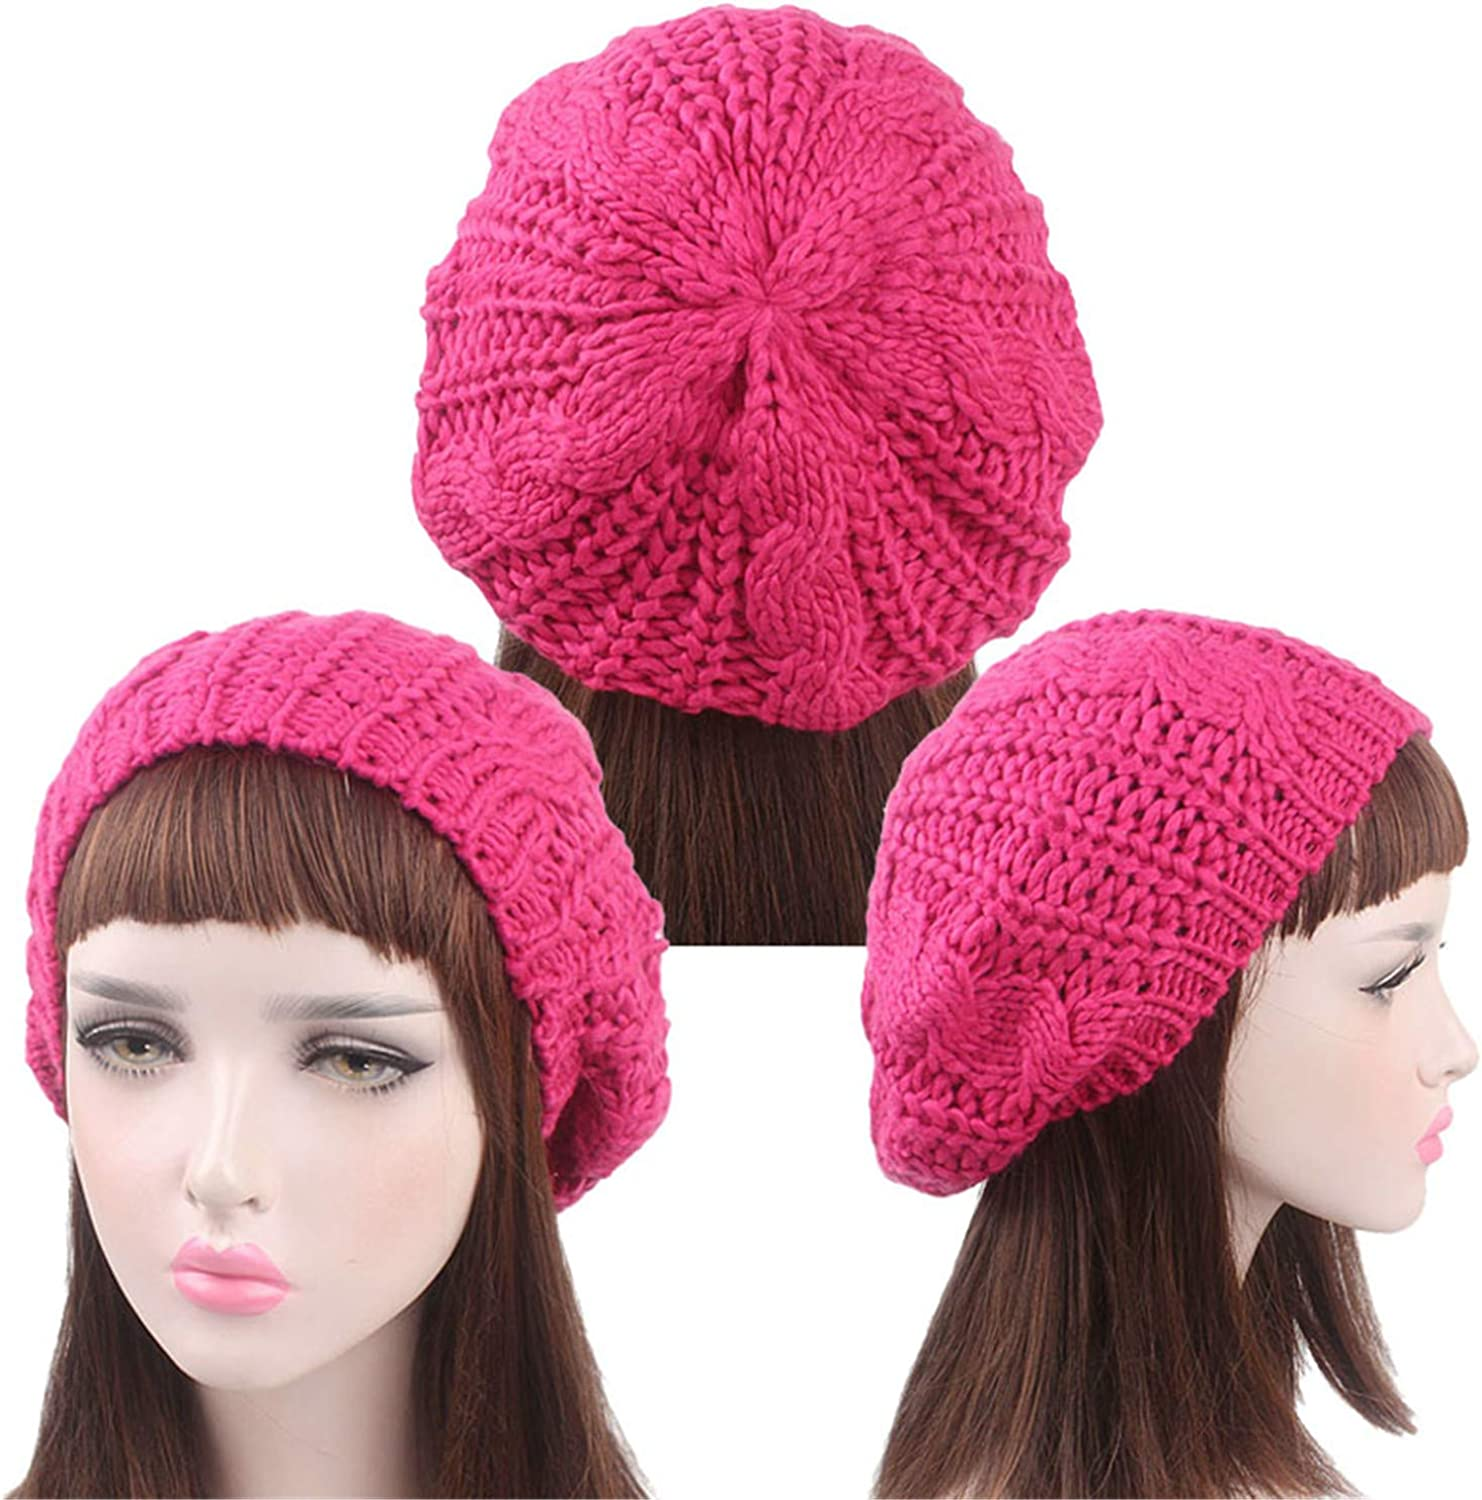 Fashion Lady Girl Twisted Hemp Flower Beret Women Warm Knitted Beanie Hat Multicolor Winter Handmade Knitting Cable Cap Yd01009 58Cm Head Size